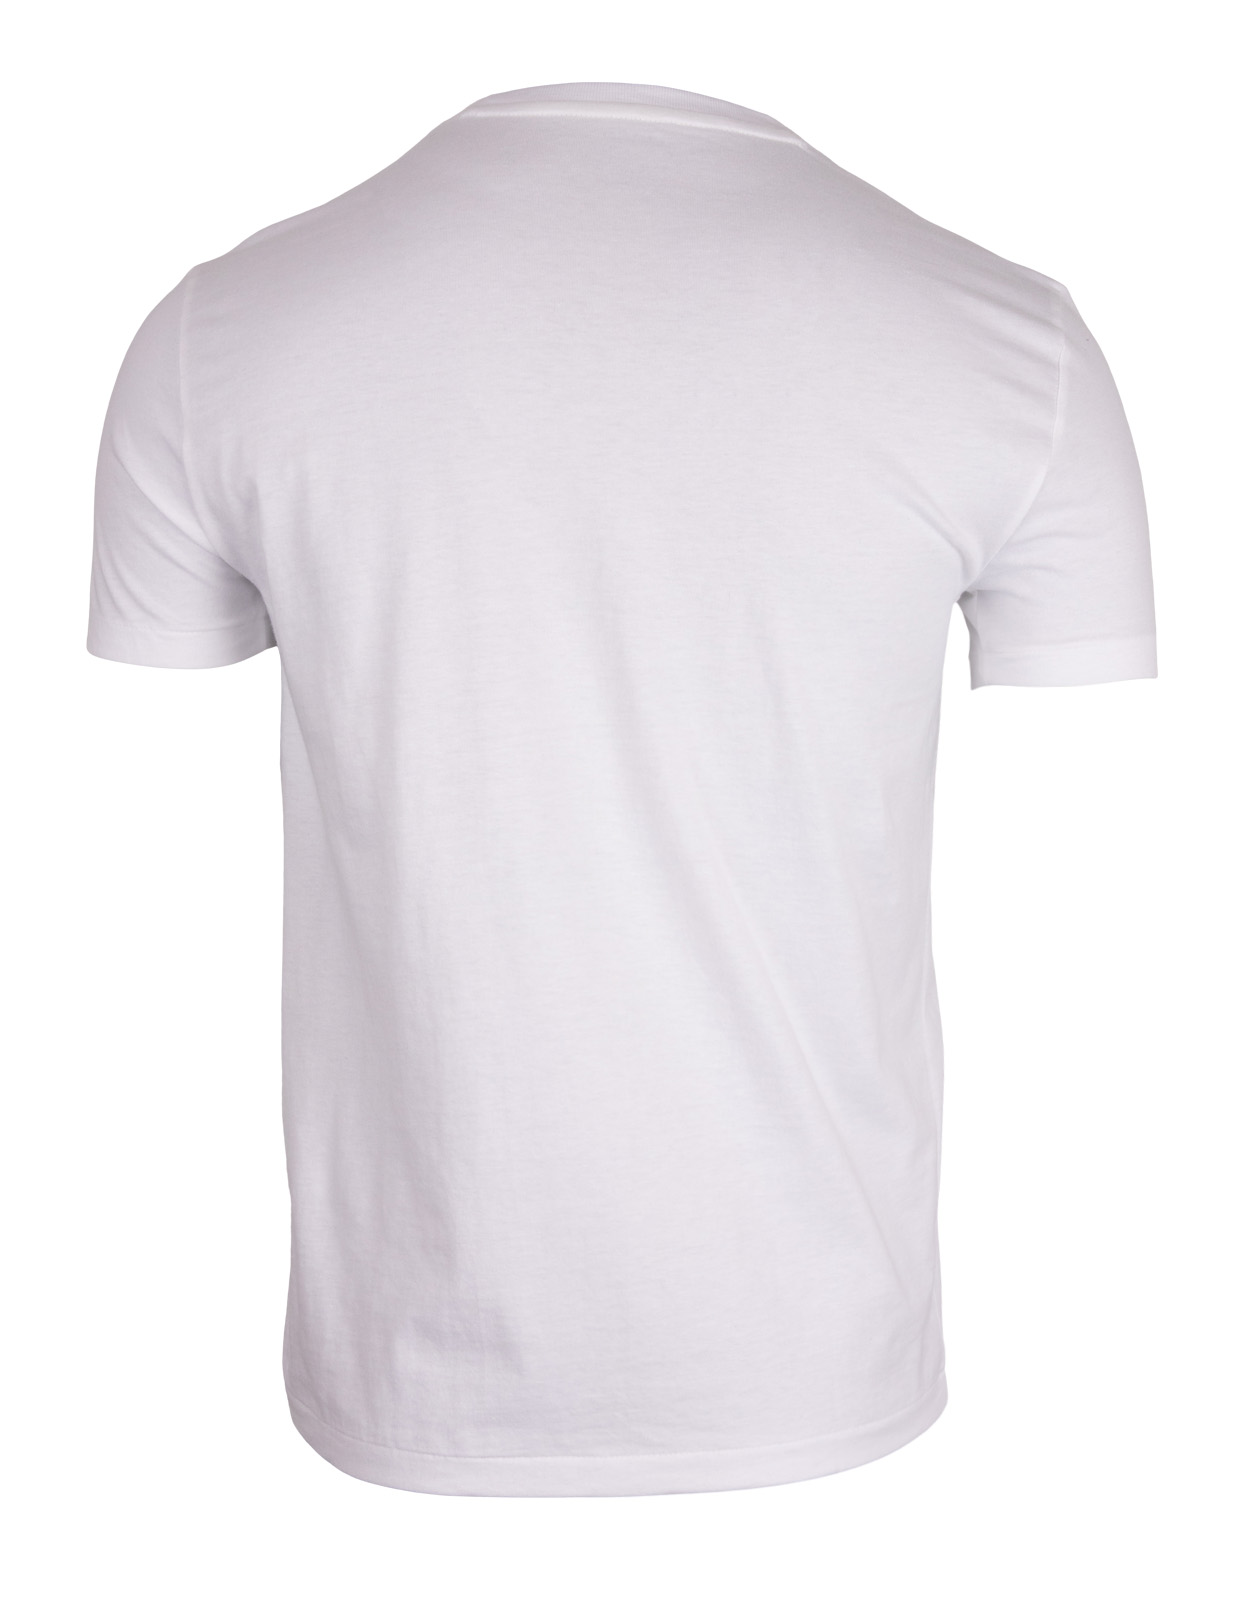 Custom Slim Fit Cotton T-Shirt White